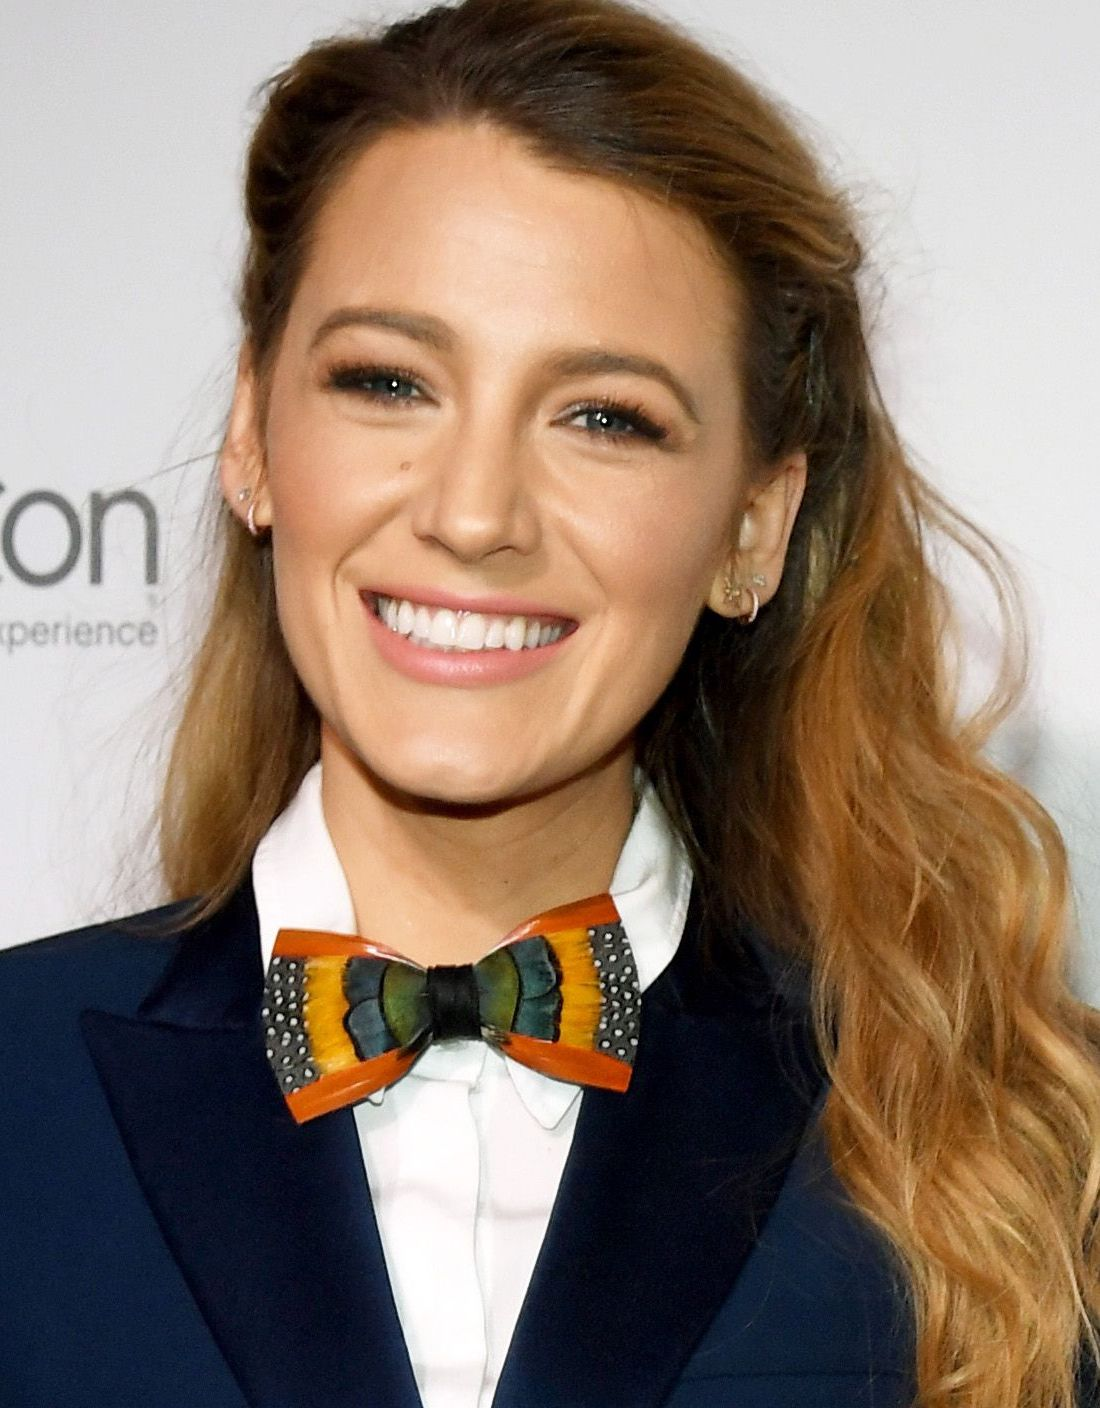 hbz blake lively index 951586168 1525269665 Celebs Before And After Surgery